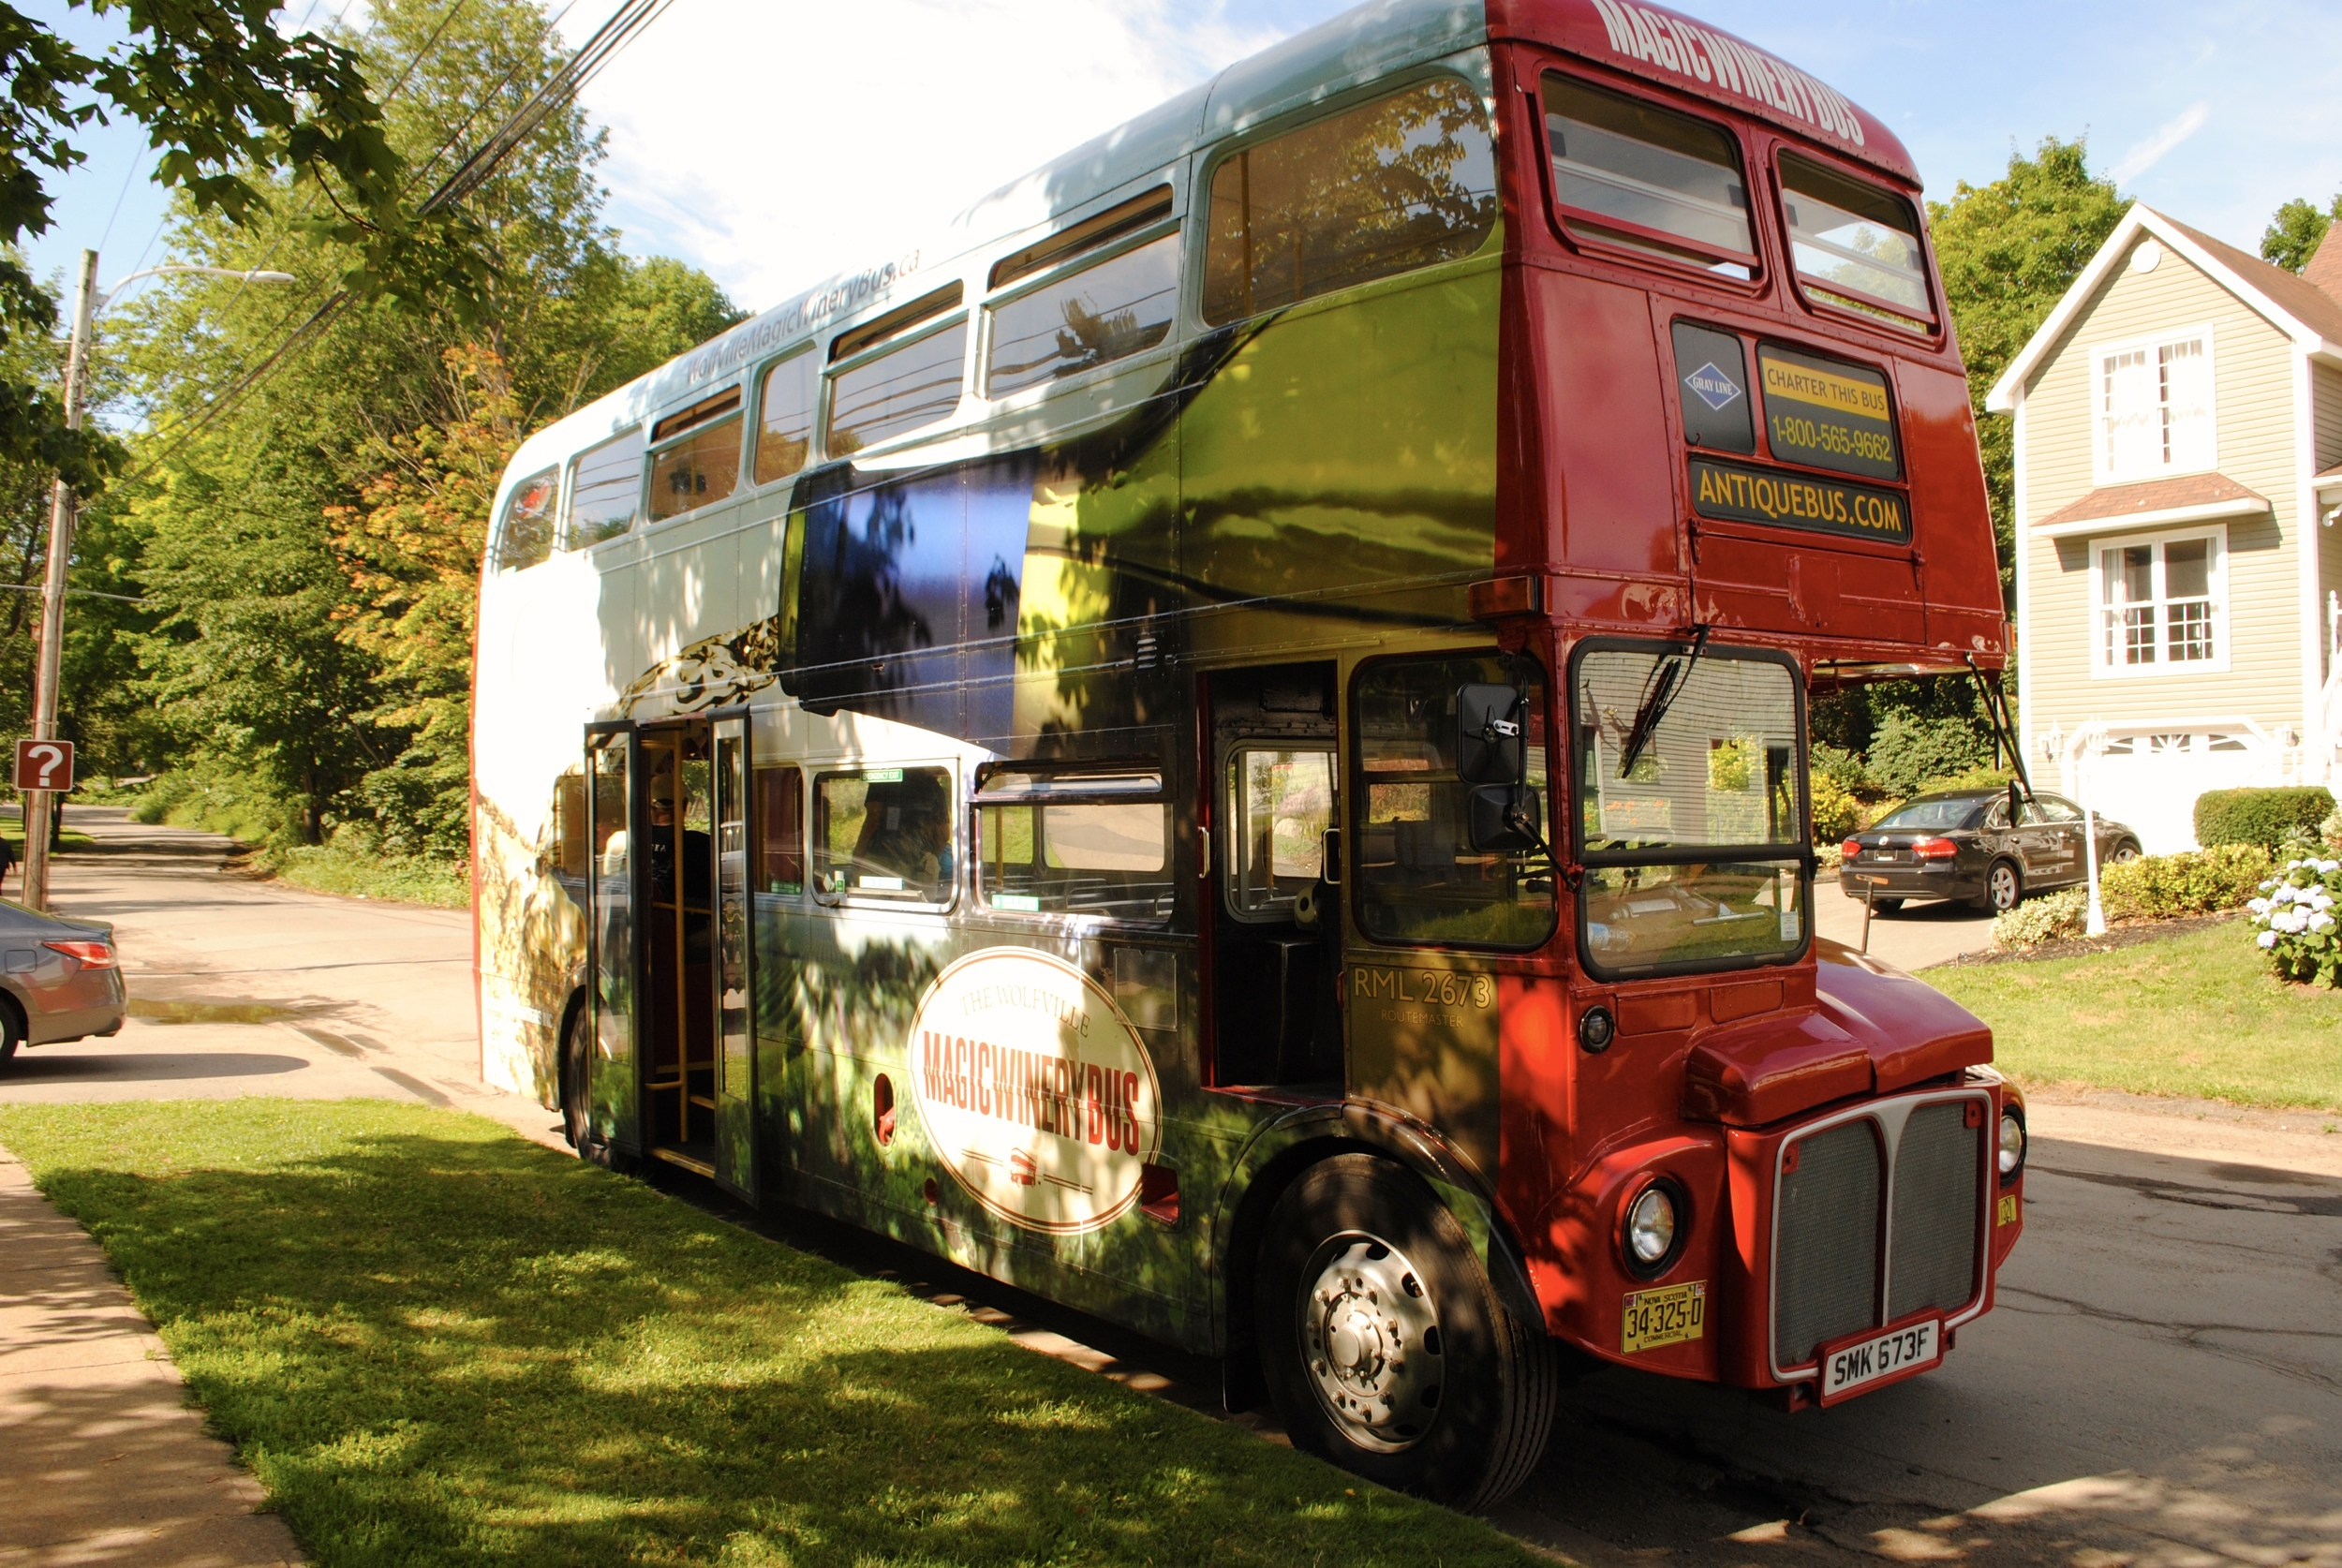 All aboard the Magic Bus Wine Tour!